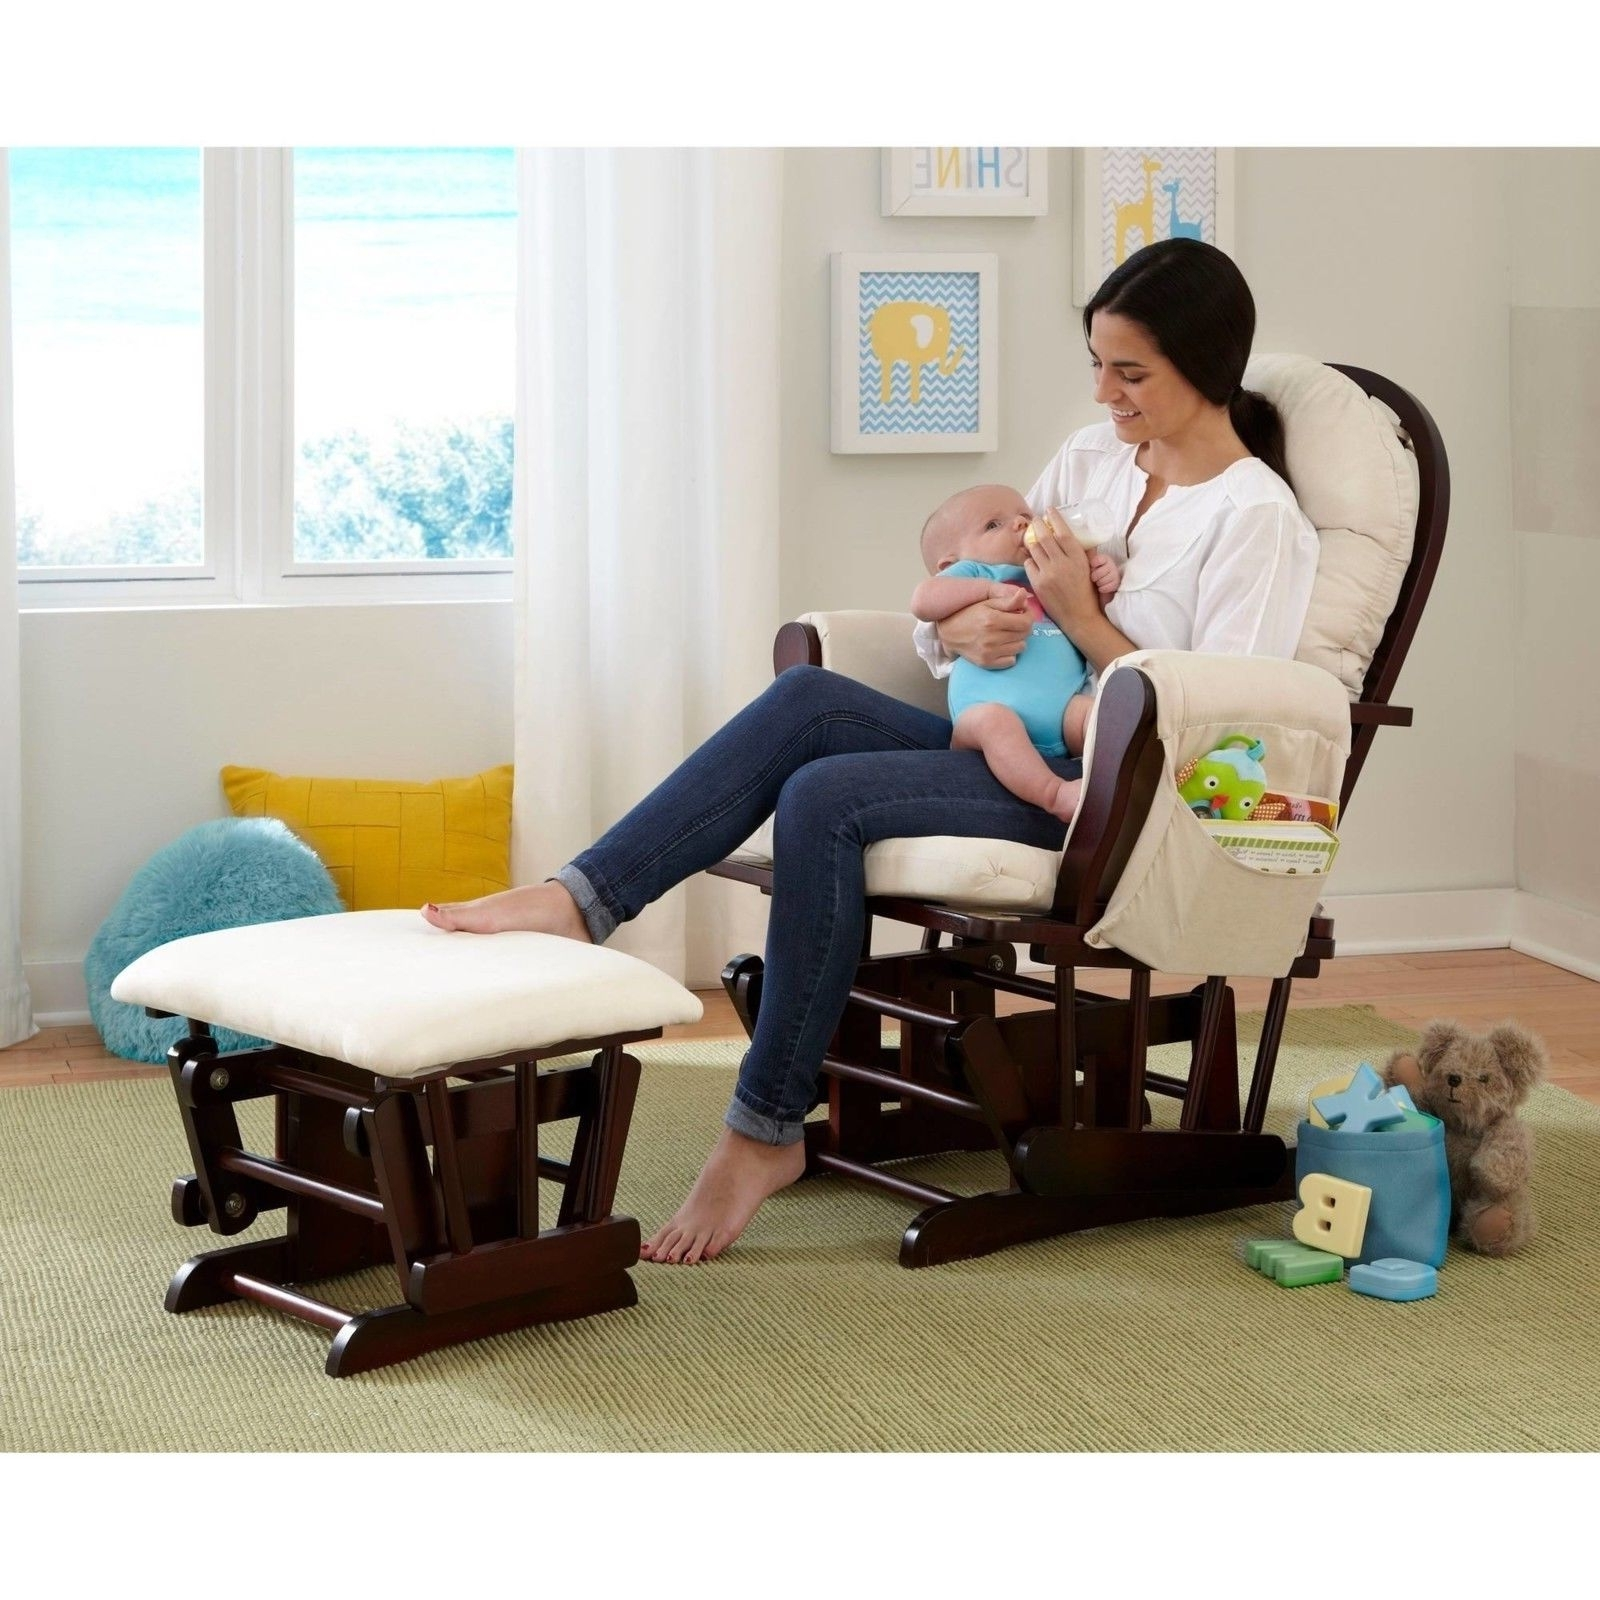 Well Known Glider Rocker Chair And Ottoman Baby Nursery Furniture Rocking Relax Regarding Rocking Chairs For Baby Room (View 14 of 20)